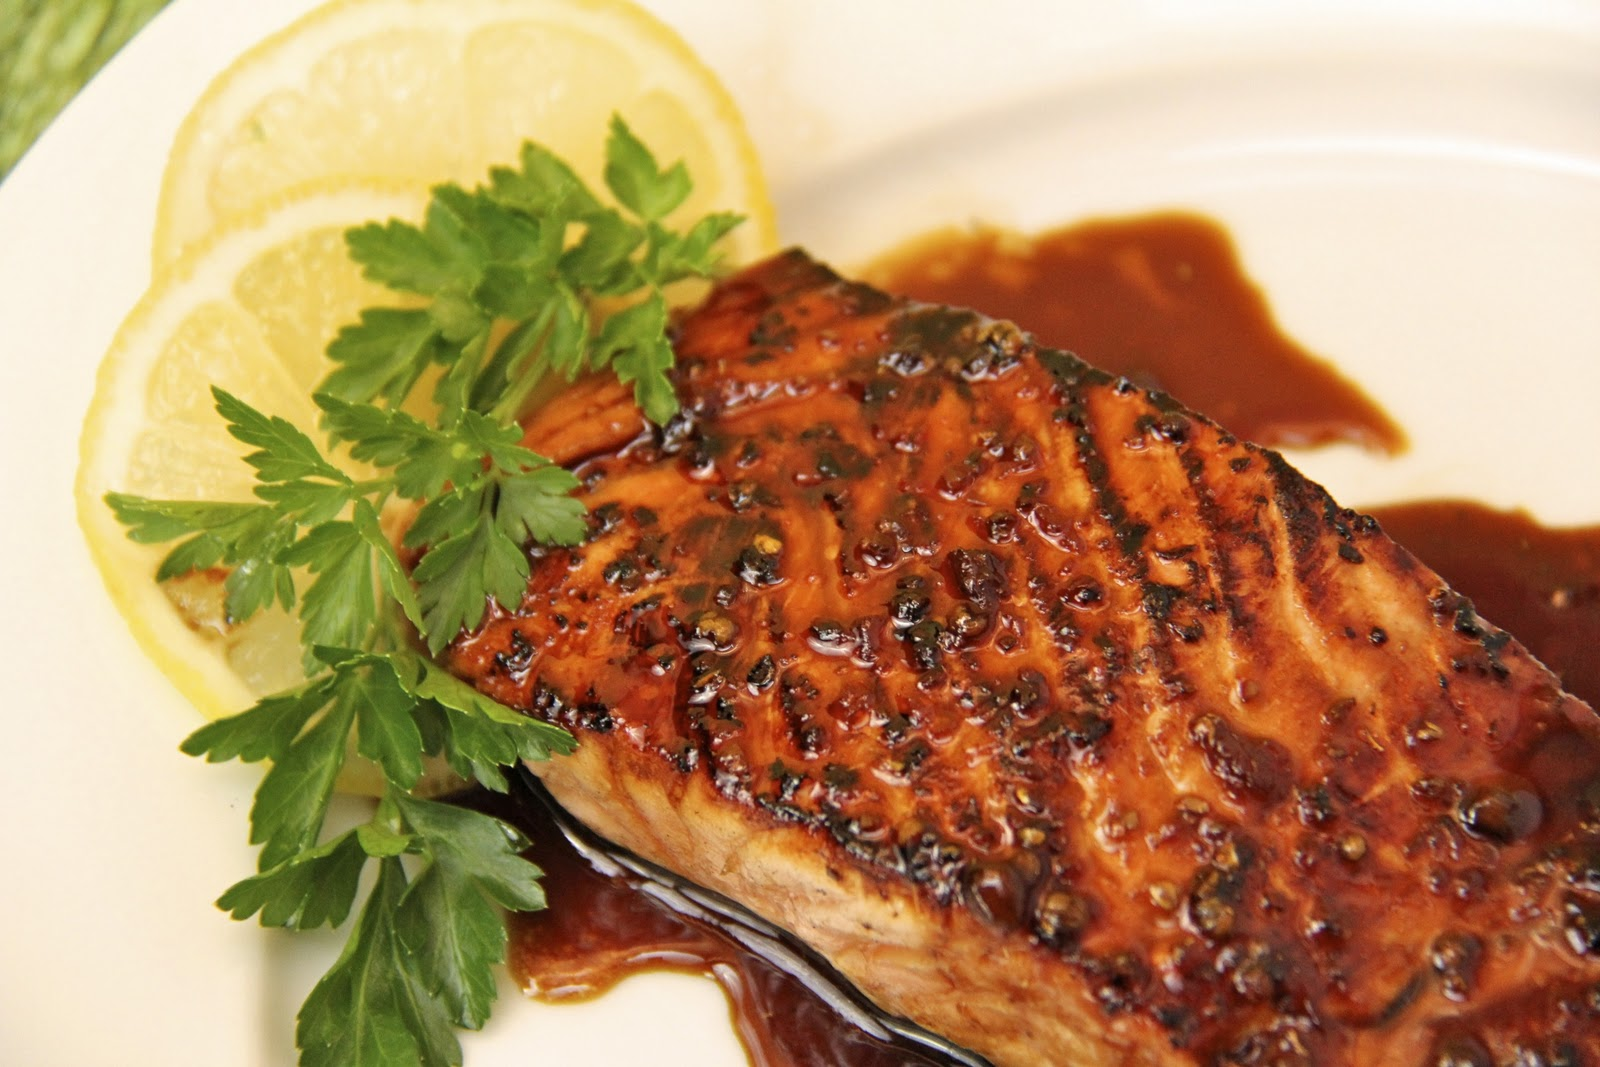 Sweet 'n' Hot Glazed Salmon (with images, tweets ...